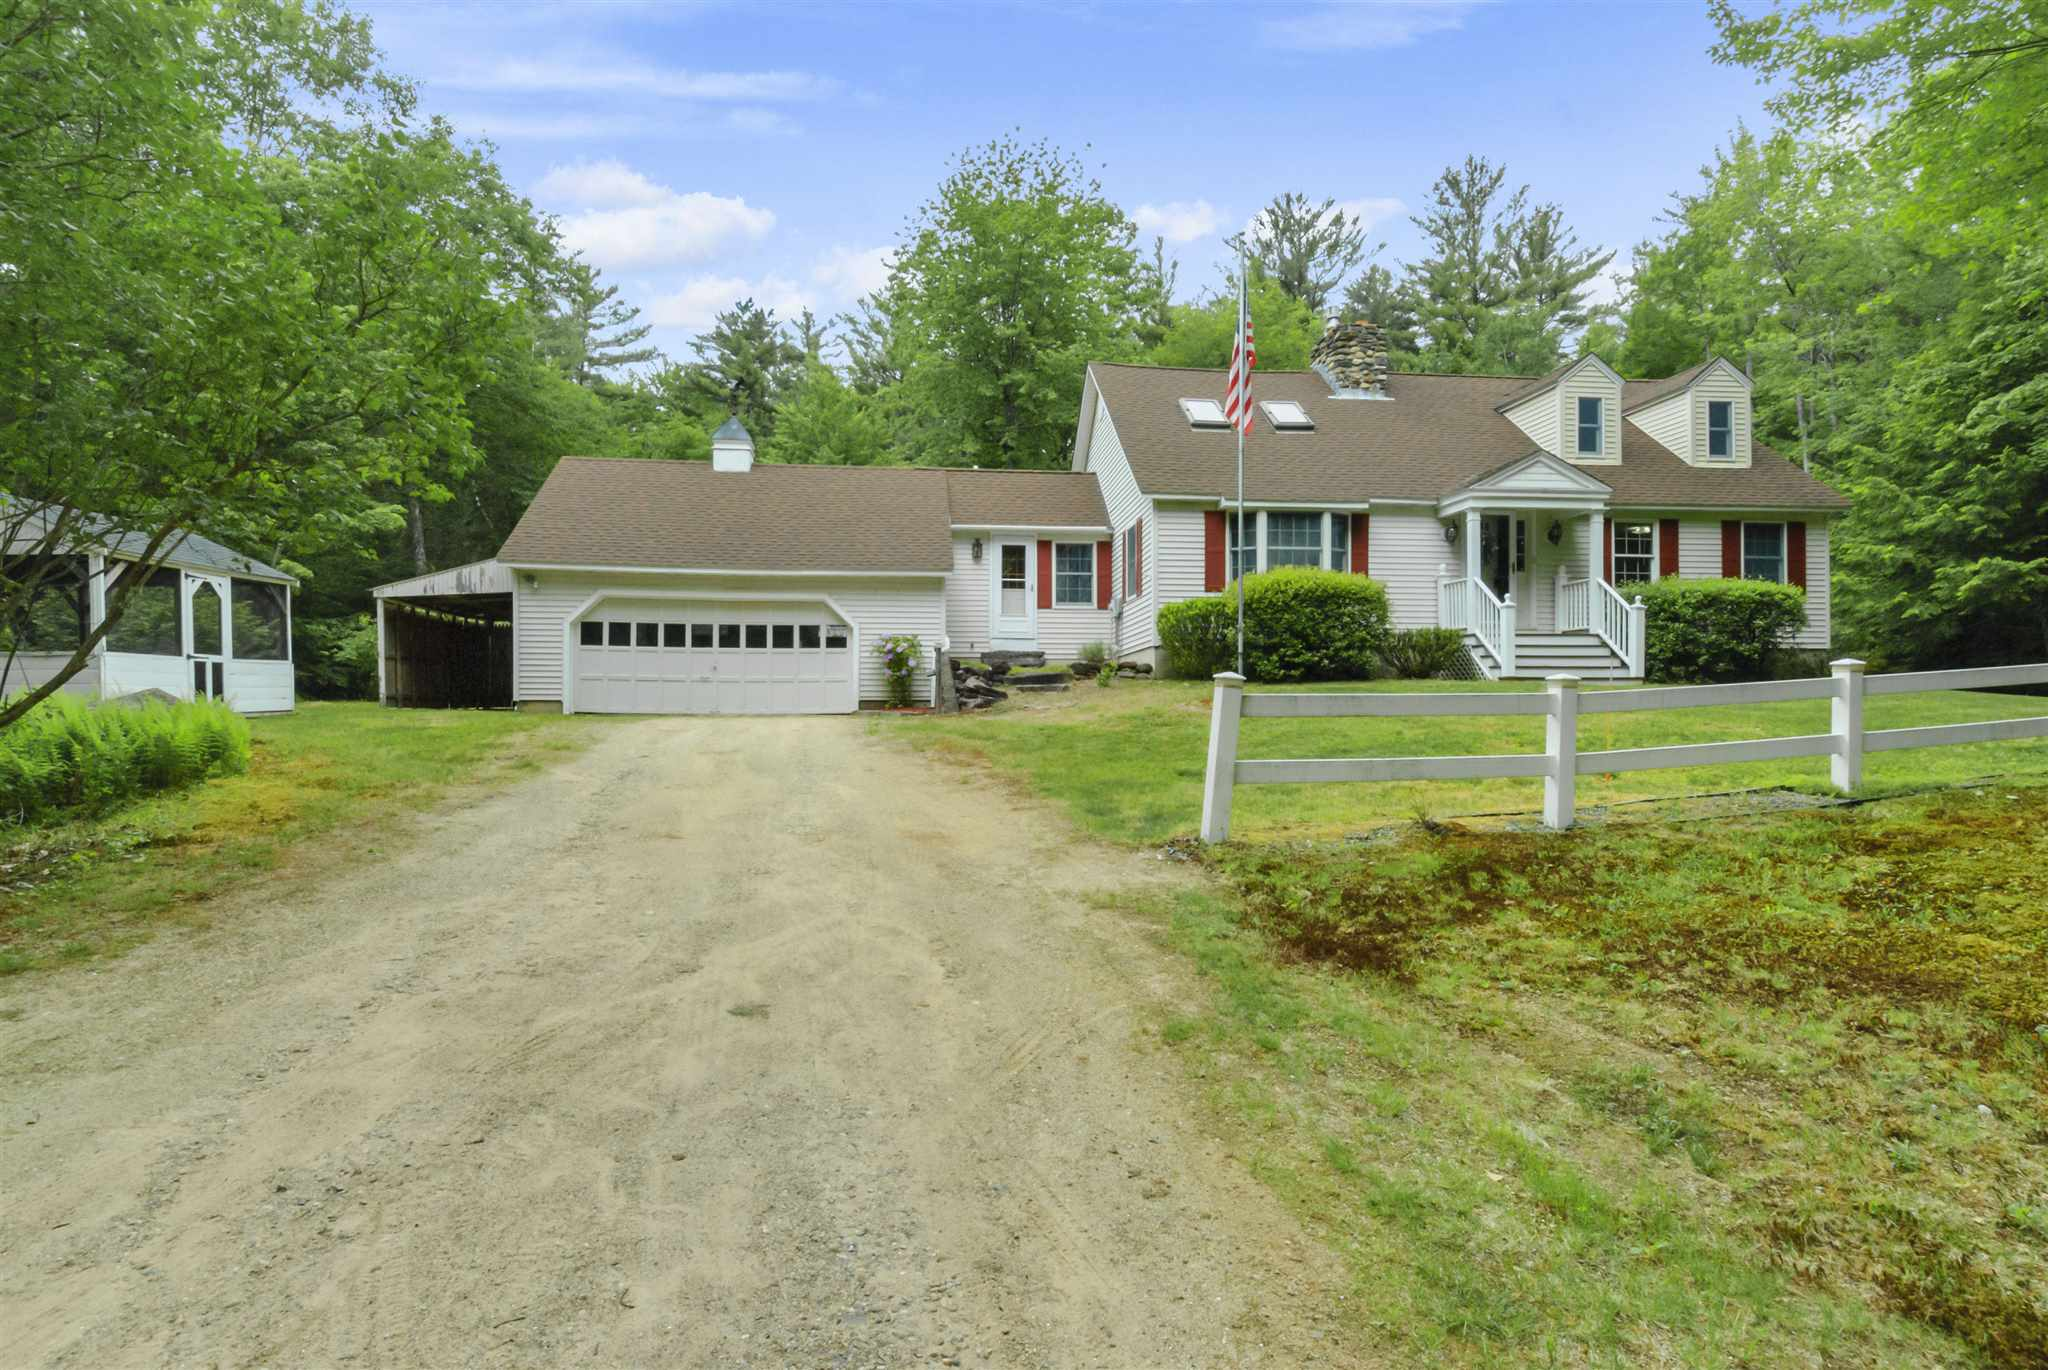 NEW DURHAM NH Home for sale $274,900